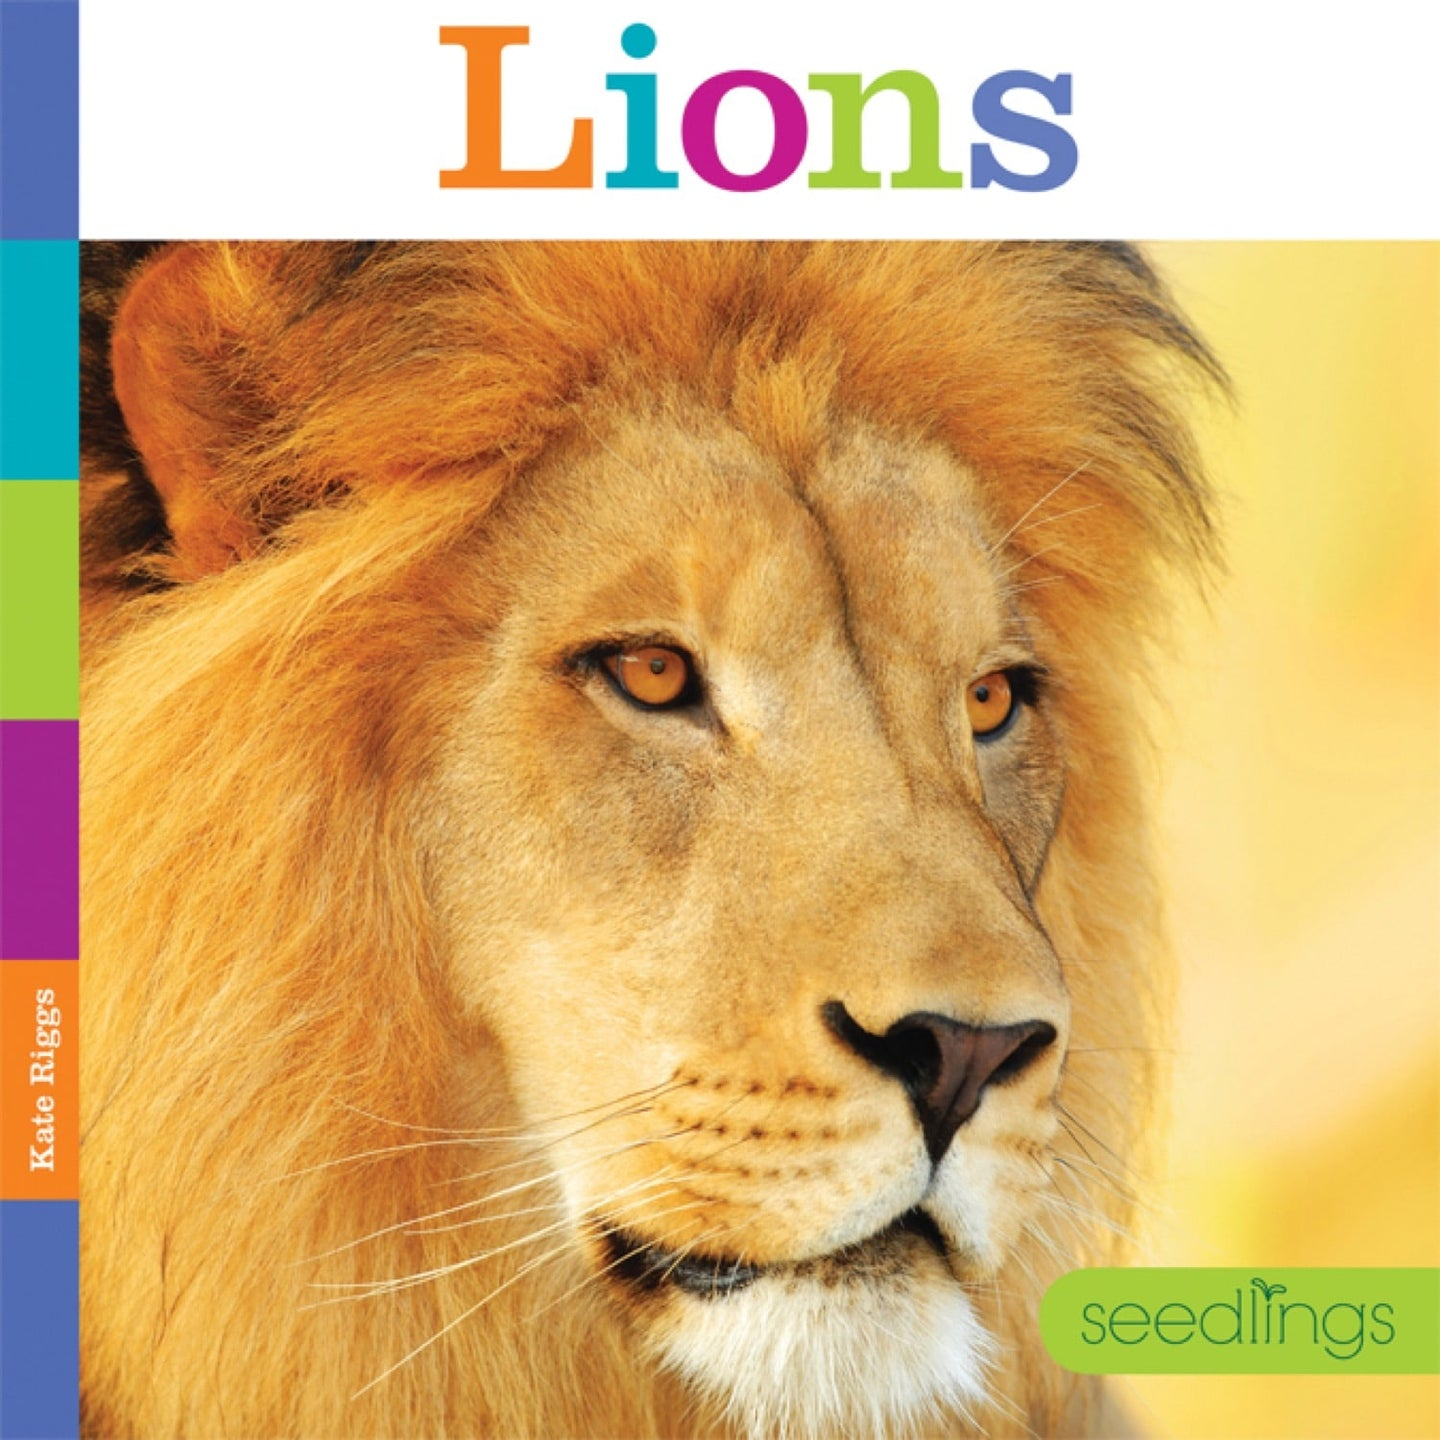 Seedlings: Lions